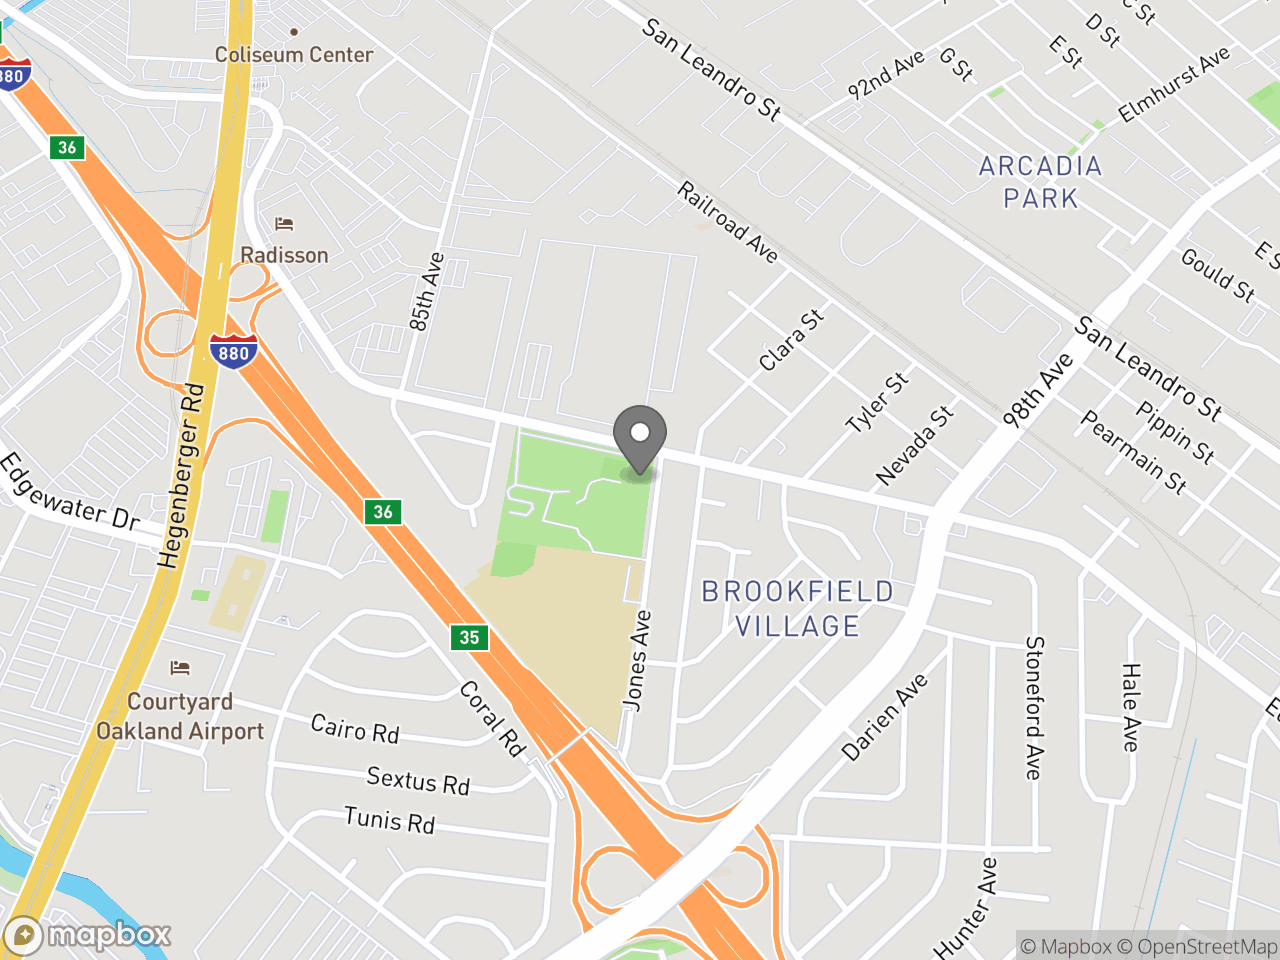 Map image for East Oakland Senior Center, located at 9255 Edes Ave in Oakland, CA 94603